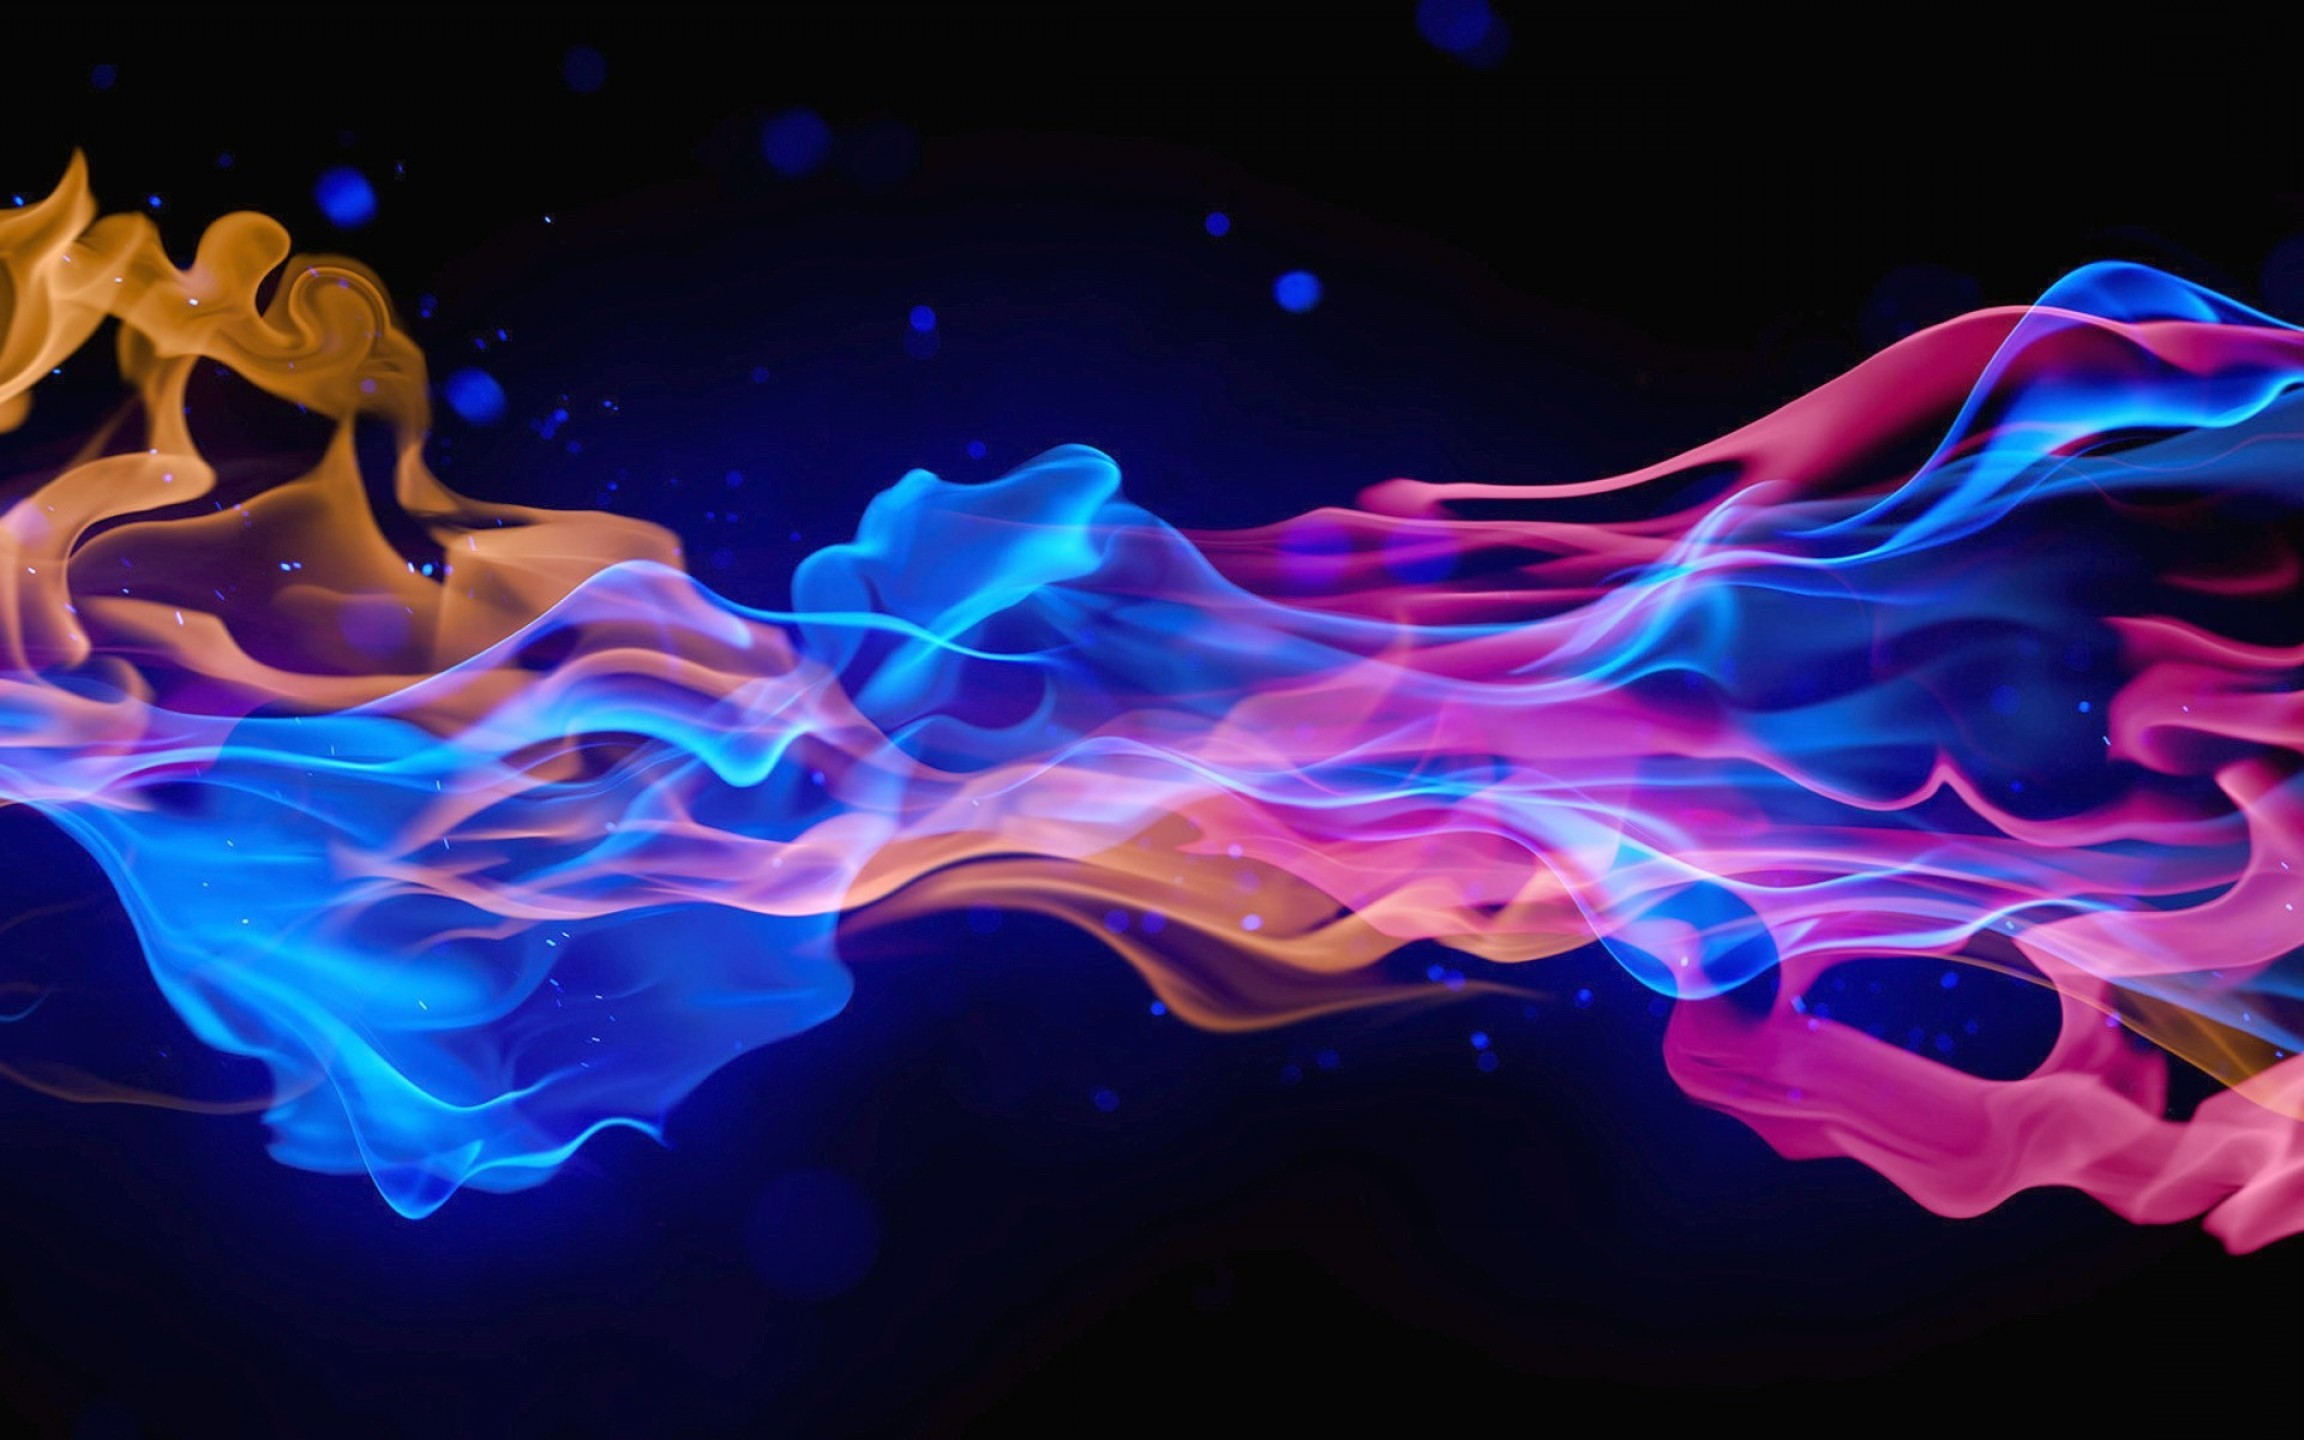 Color Smoke Vector: Mobile Dark Backgroundscool Images D Color Smoke Iphone Vectorabstraction Amazing